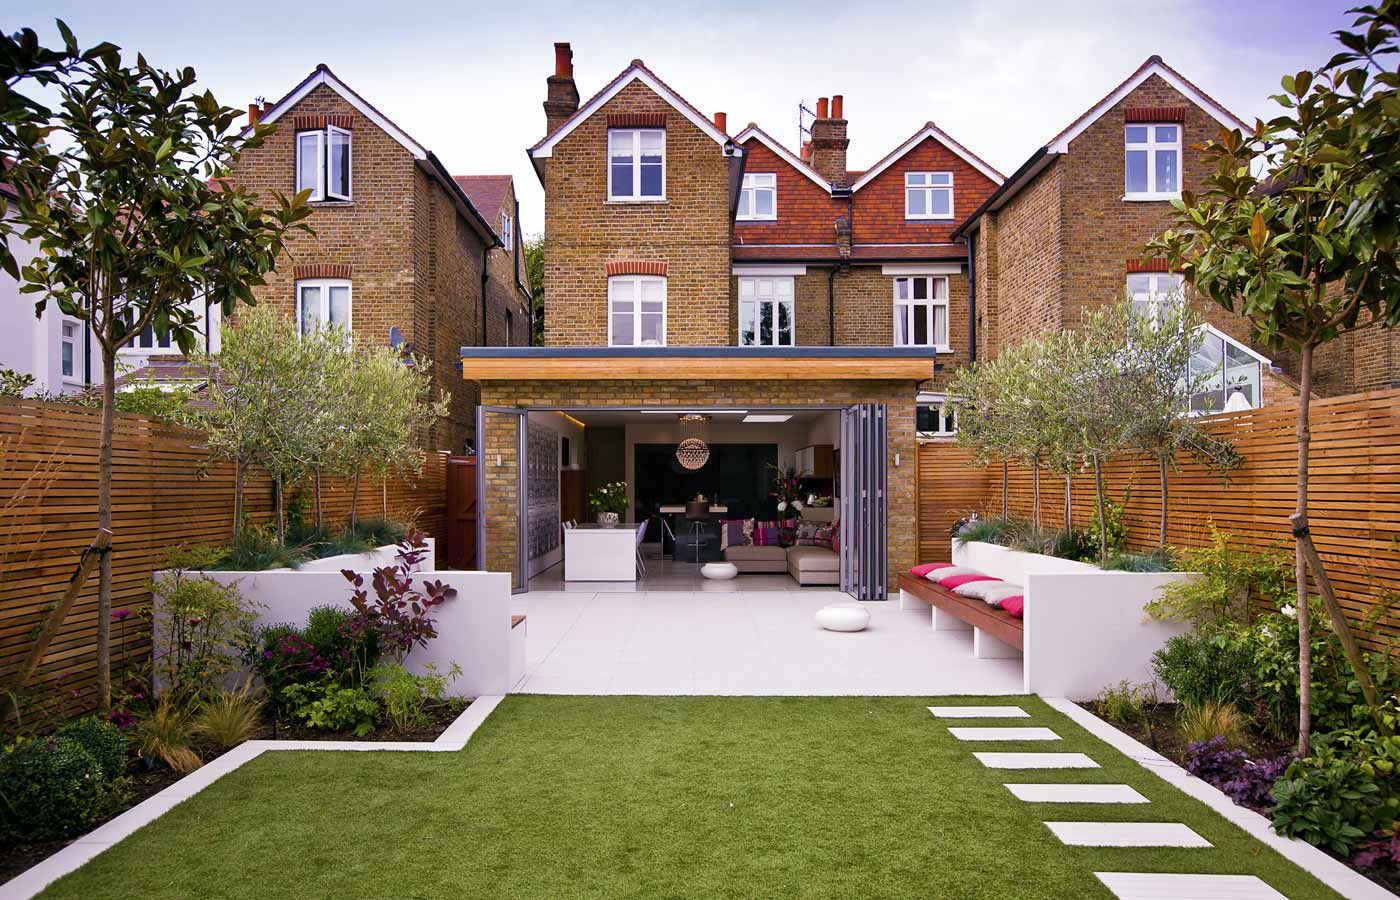 small narrow garden design ideas - Garden Ideas London